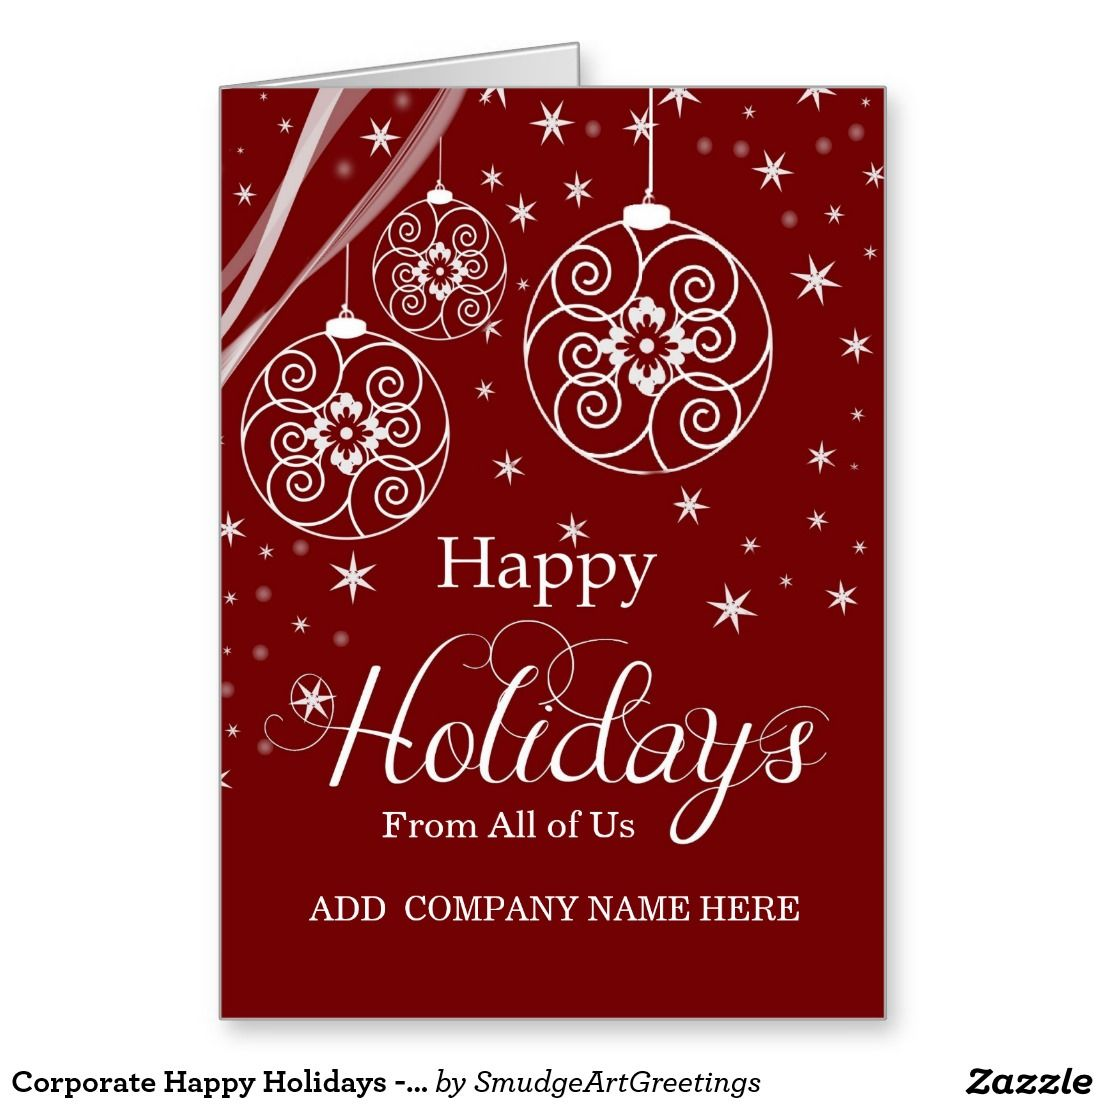 Corporate happy holidays from all of us red greeting card corporate happy holidays from all of us red greeting card http m4hsunfo